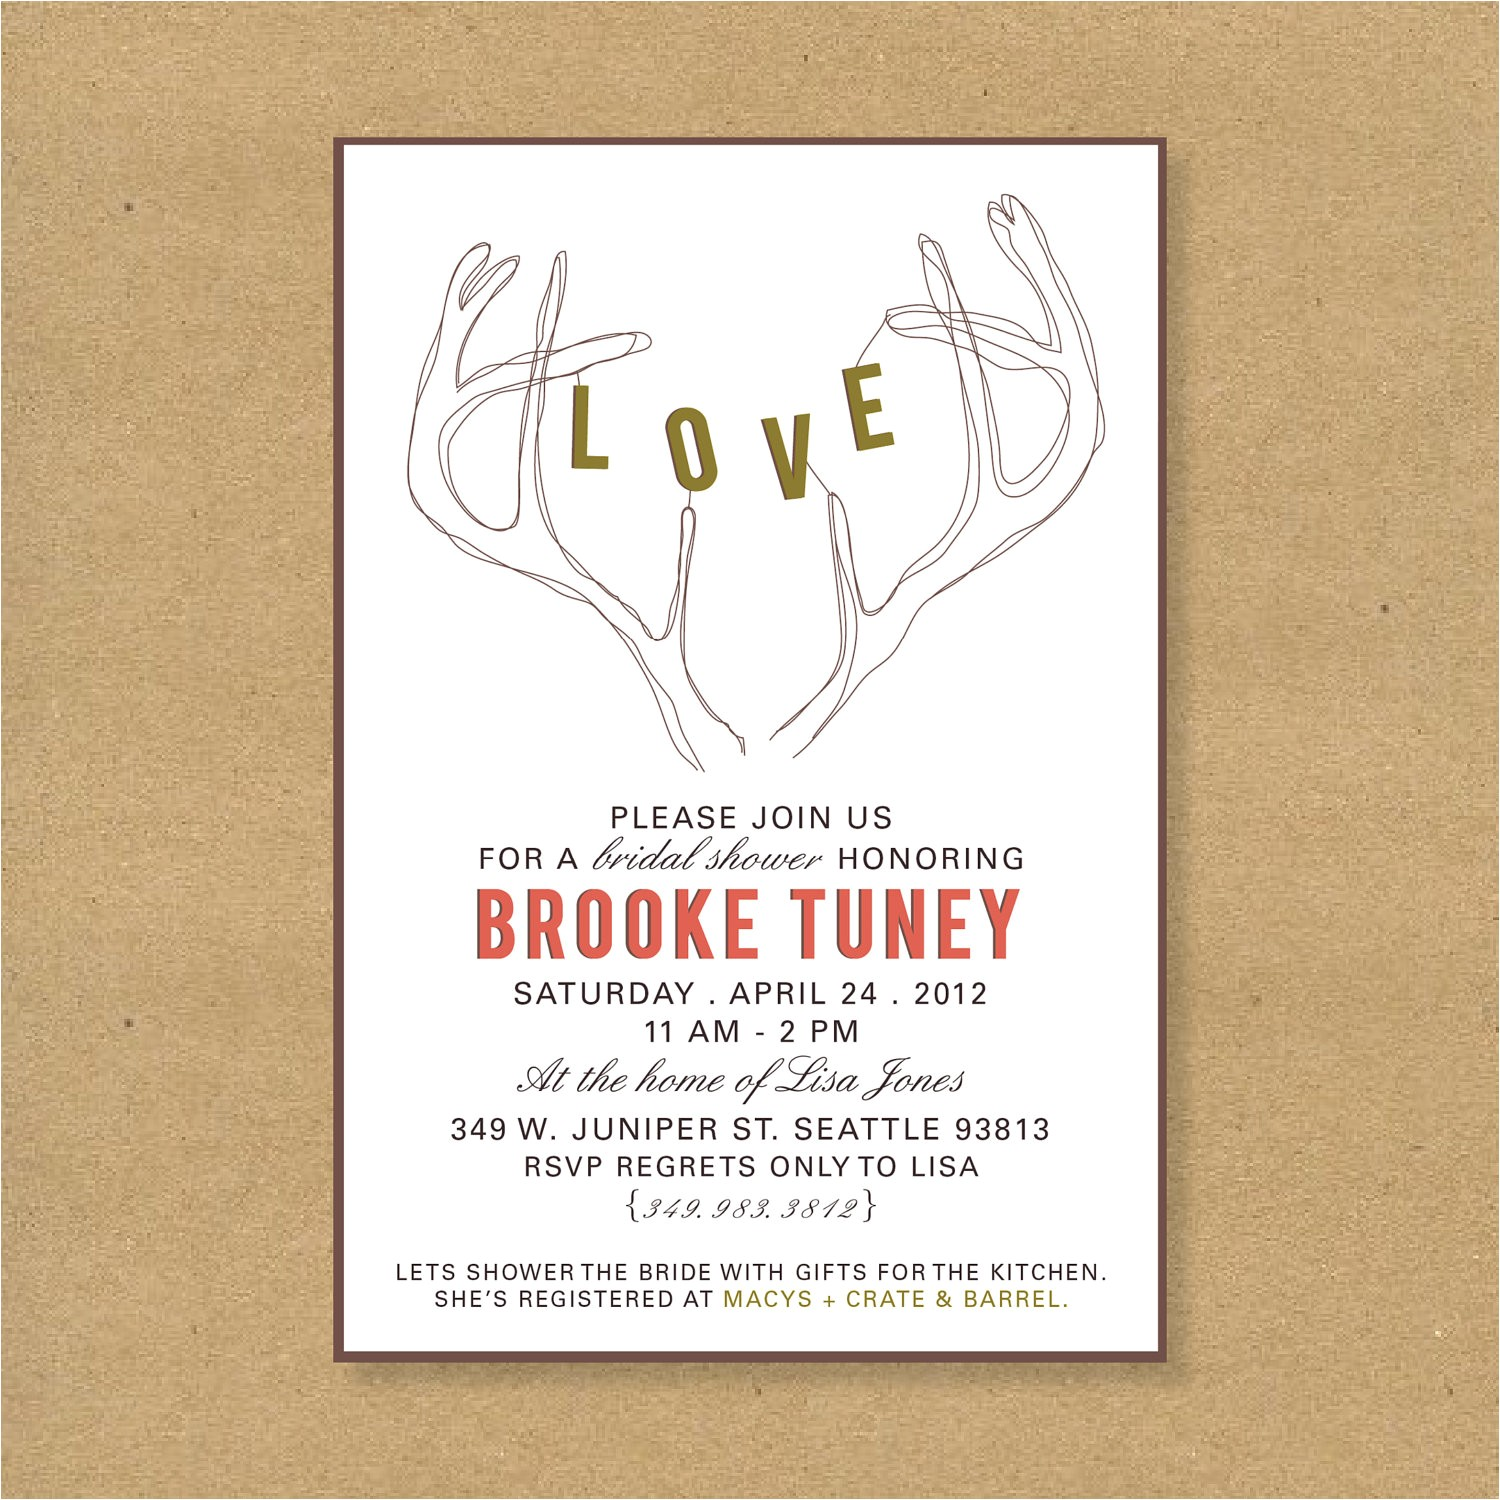 brooke tuney gift card wedding shower invitation wording typography incredible designing template best layout finishing